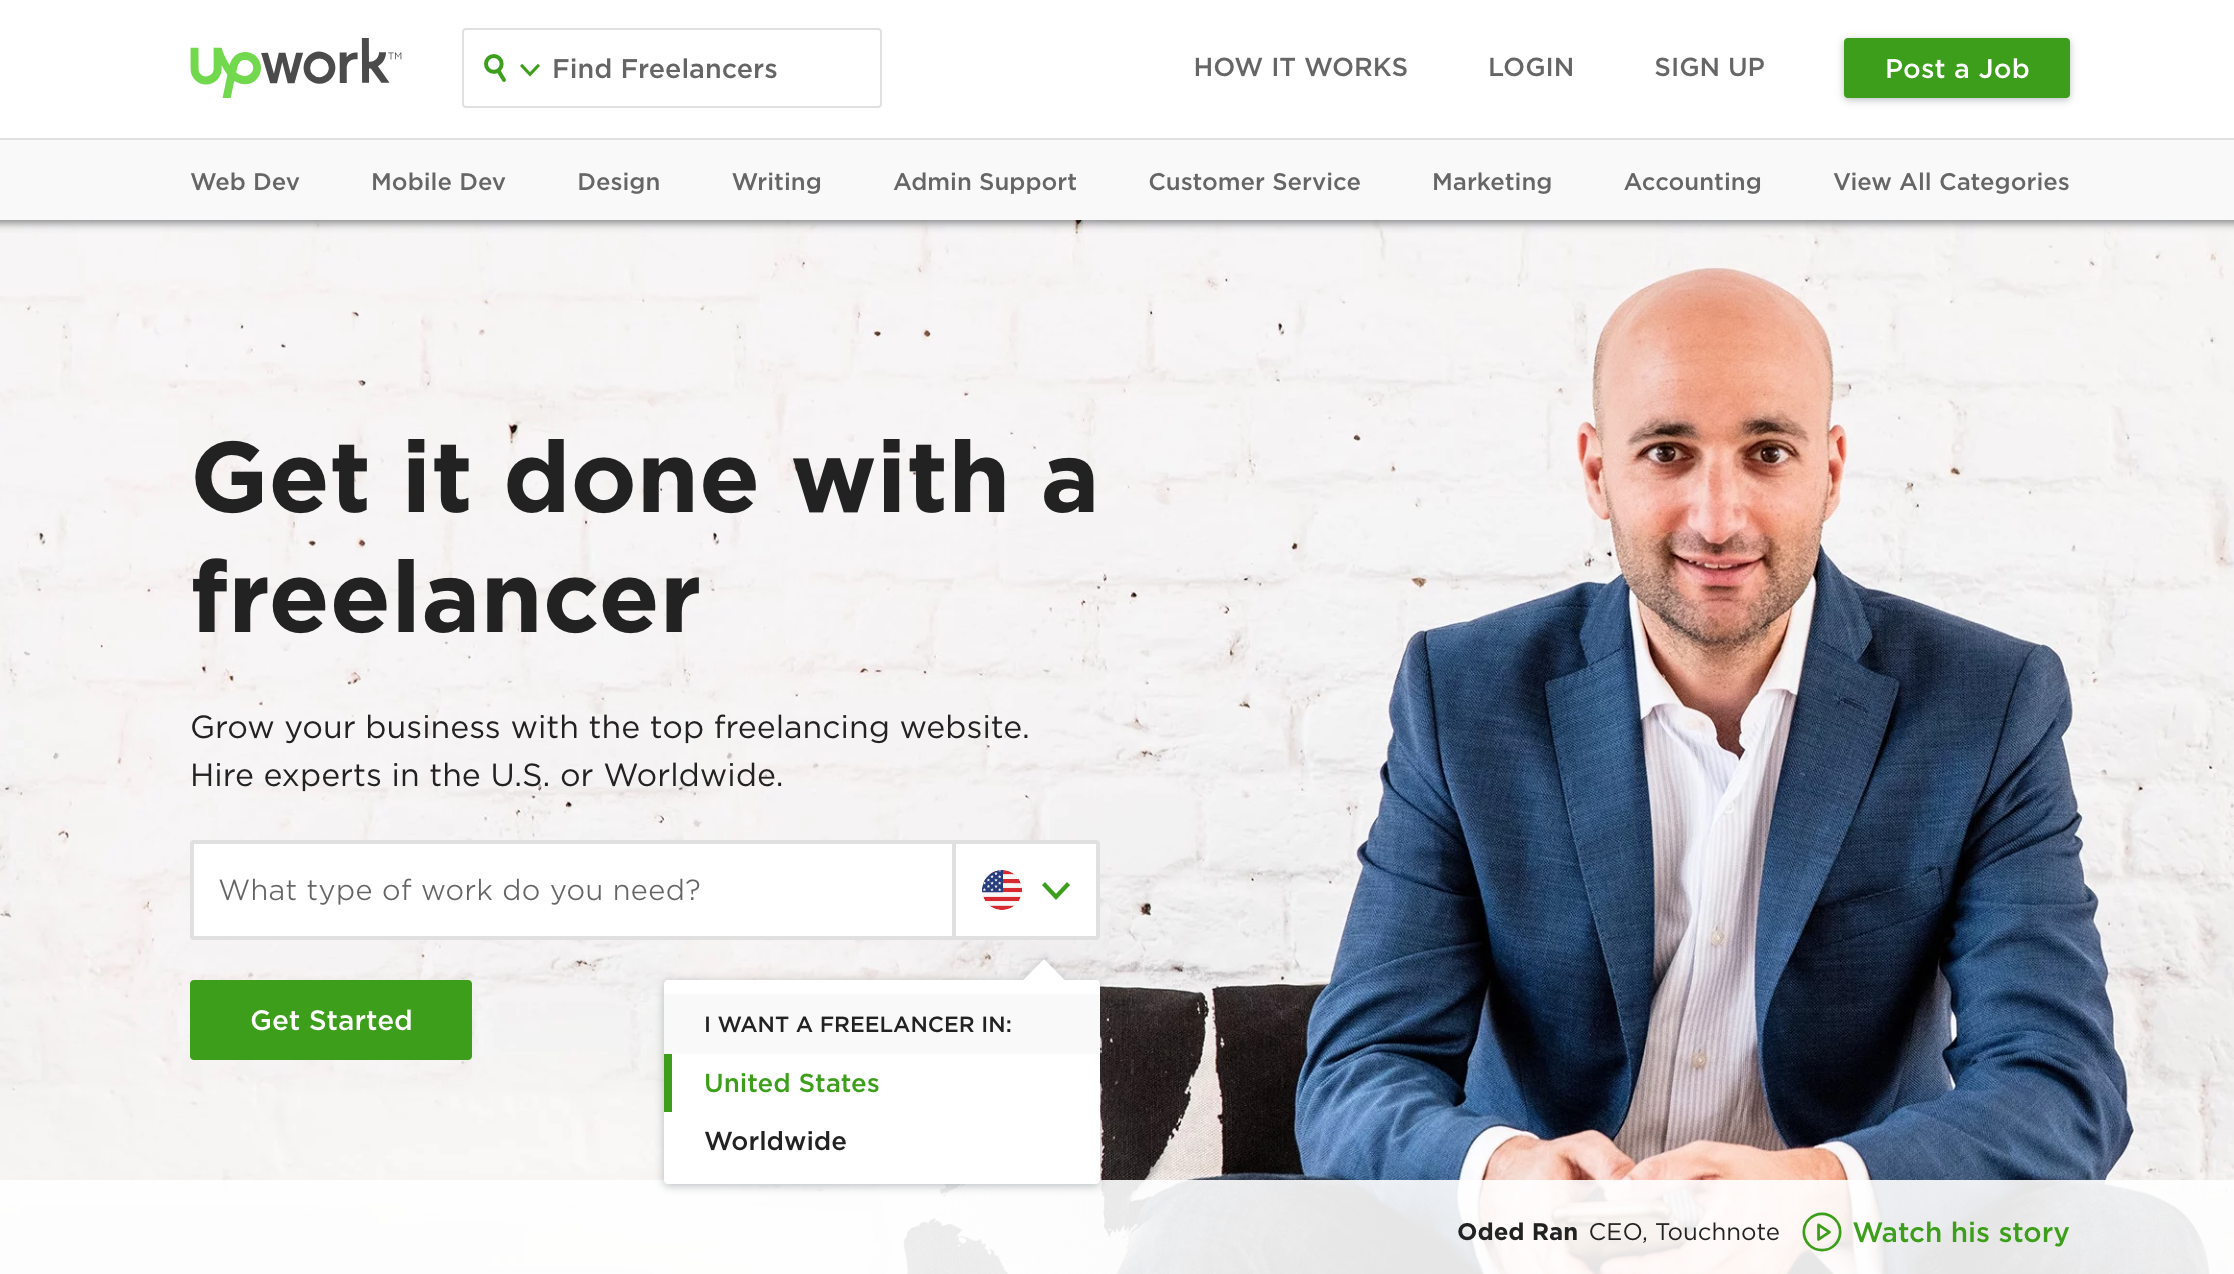 Best freelance job sites, how to find freelance jobs, become a freelancer